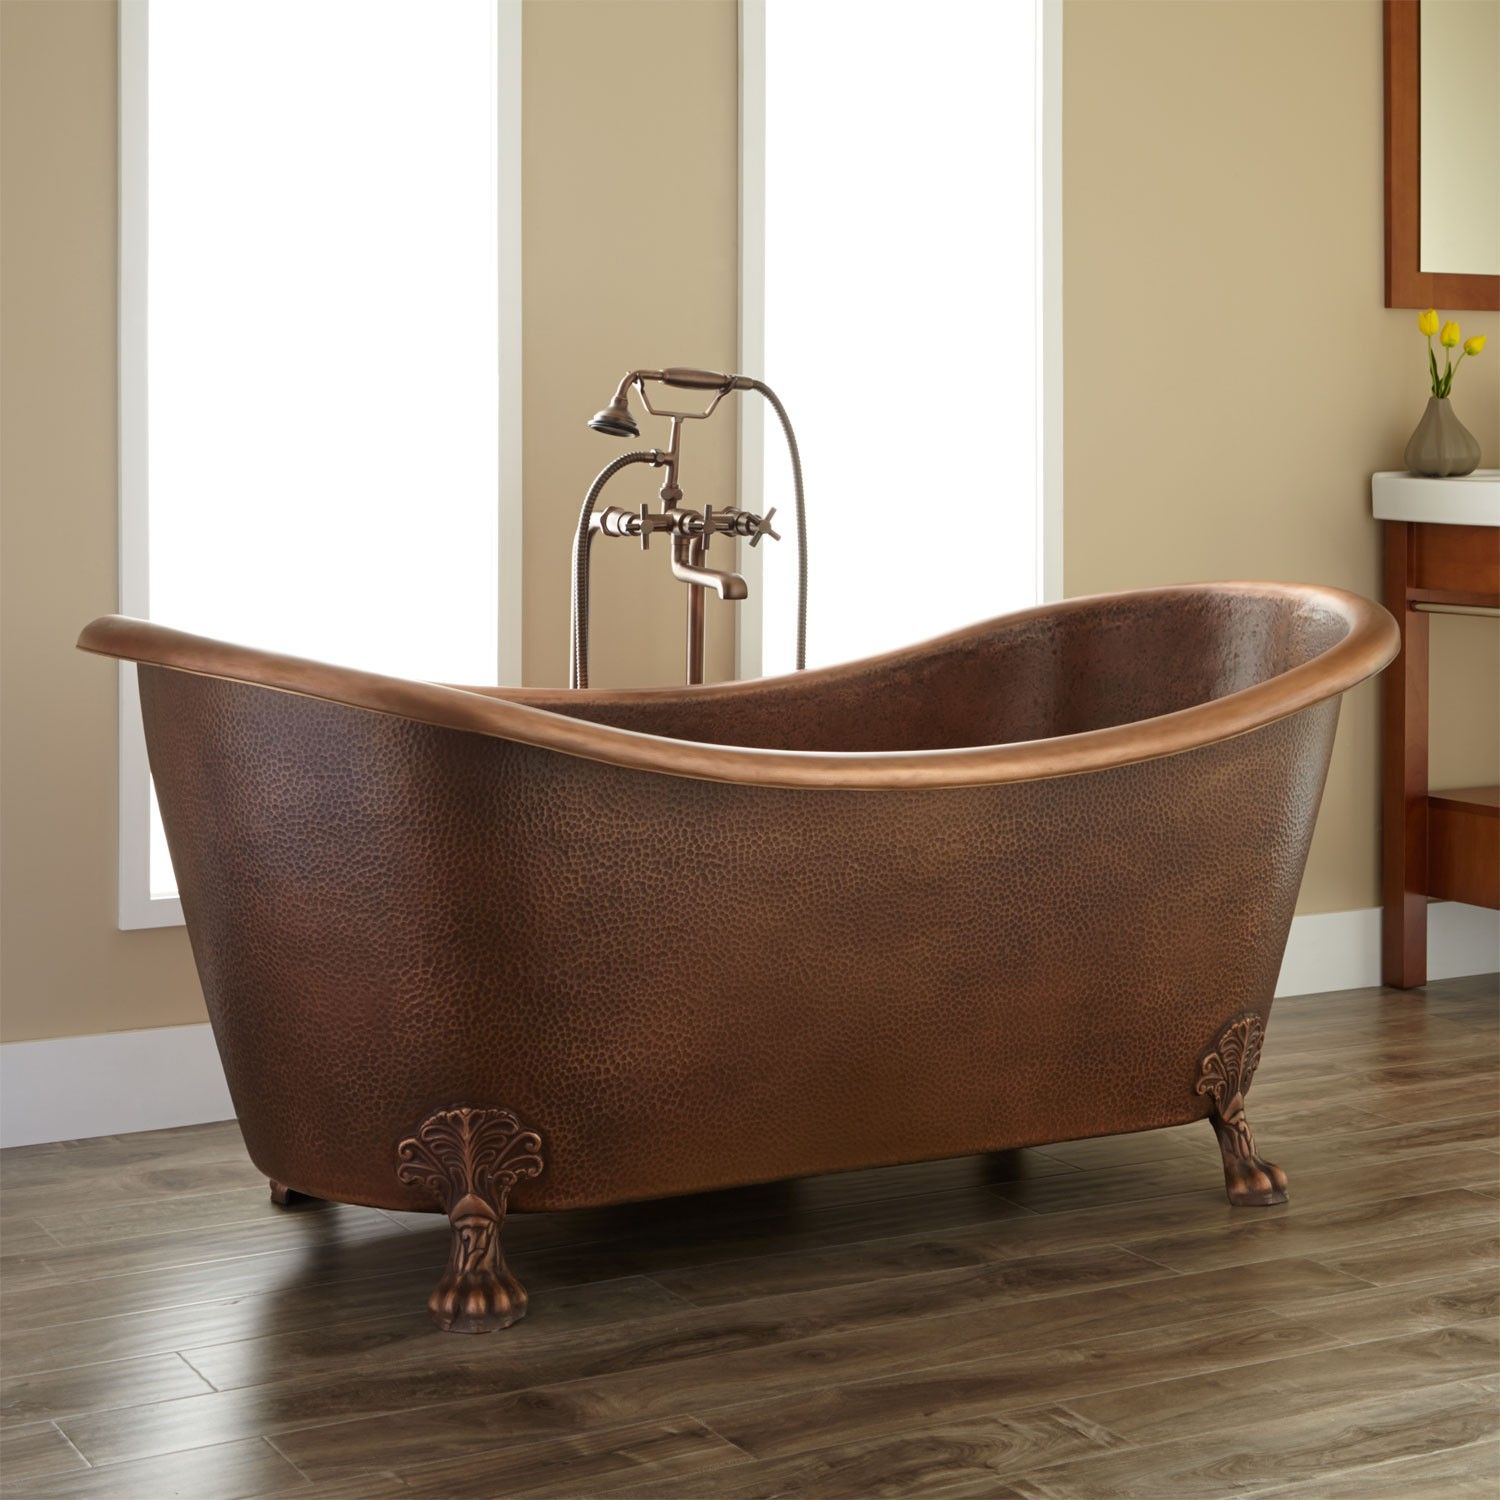 Claw foot tubs bathtubs isabella hammered copper for Copper claw foot tub